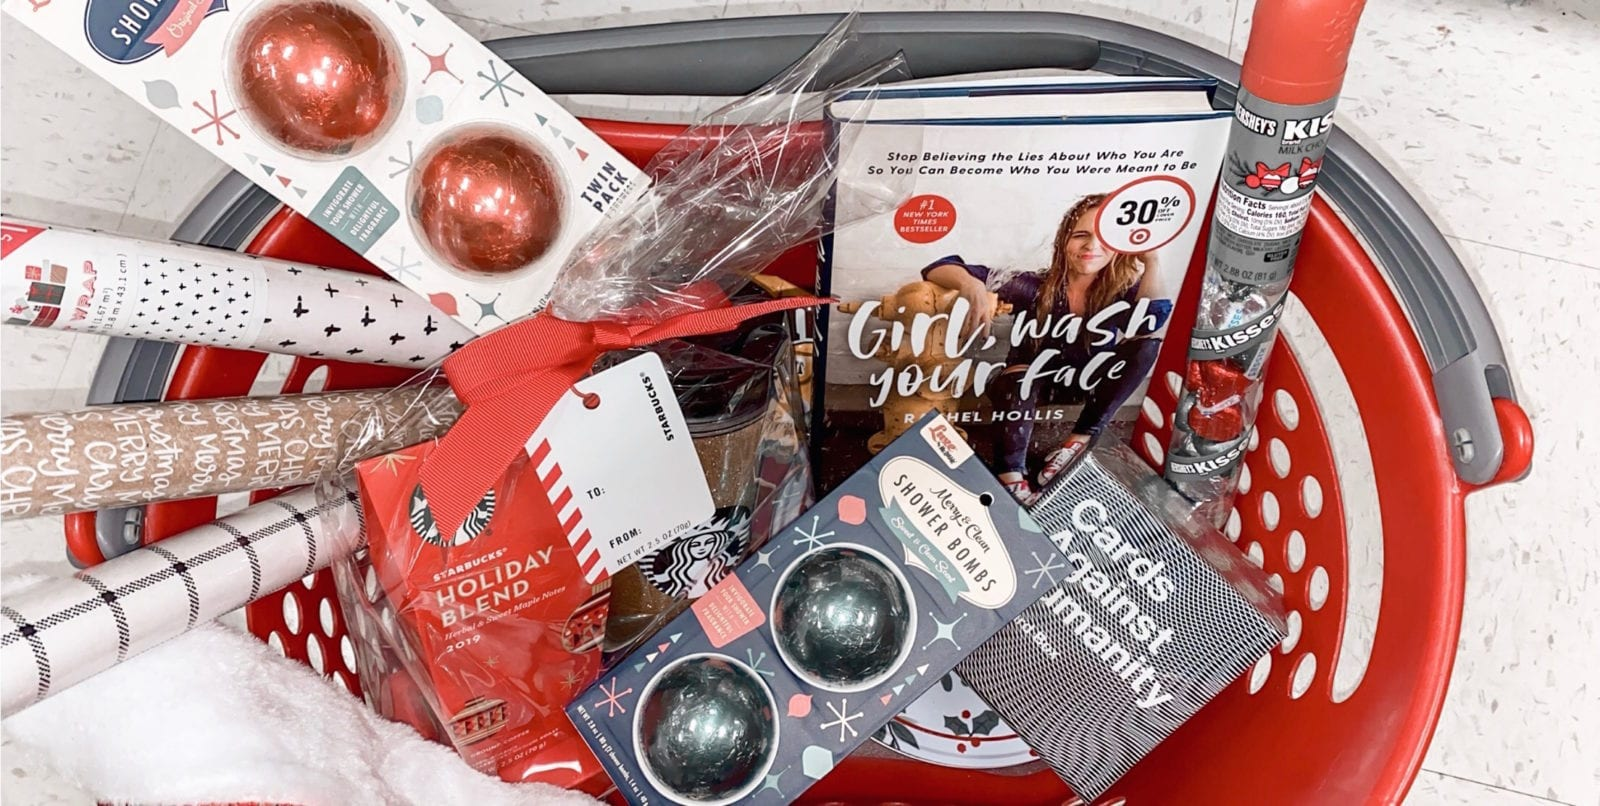 several great white elephant gifts are piled up in a target basket. From holiday glitter bath bombs and cozy socks, to books, card games, and coffee gift sets.